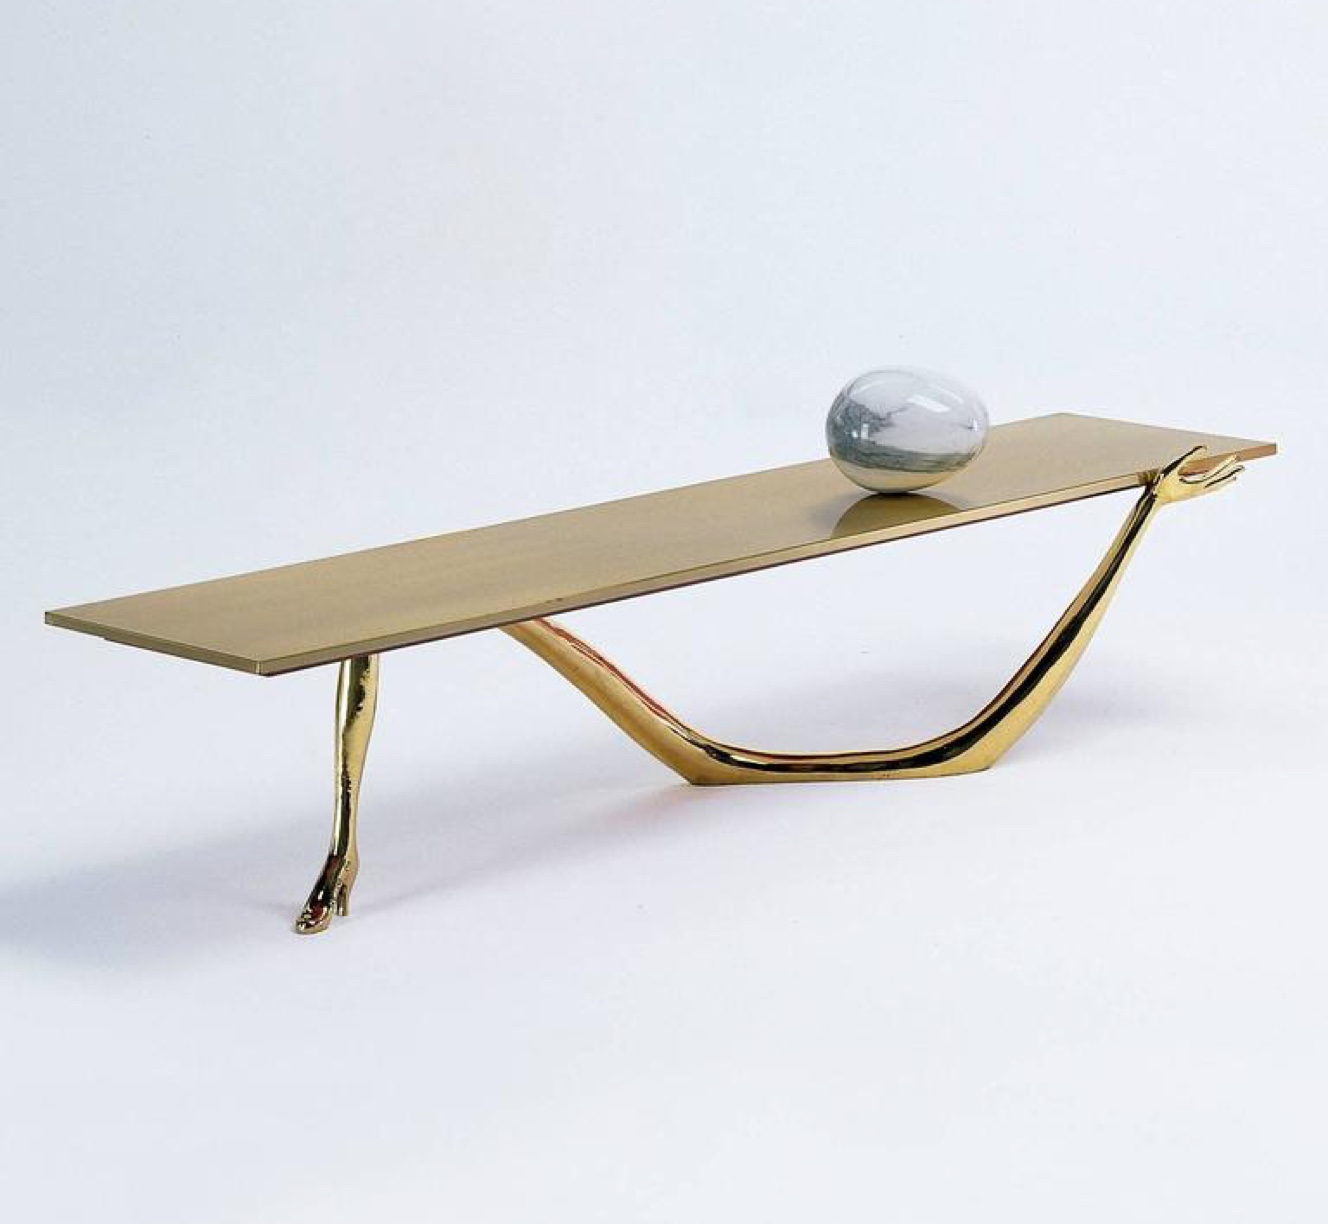 The matching Leda Table. Image via Artnet.